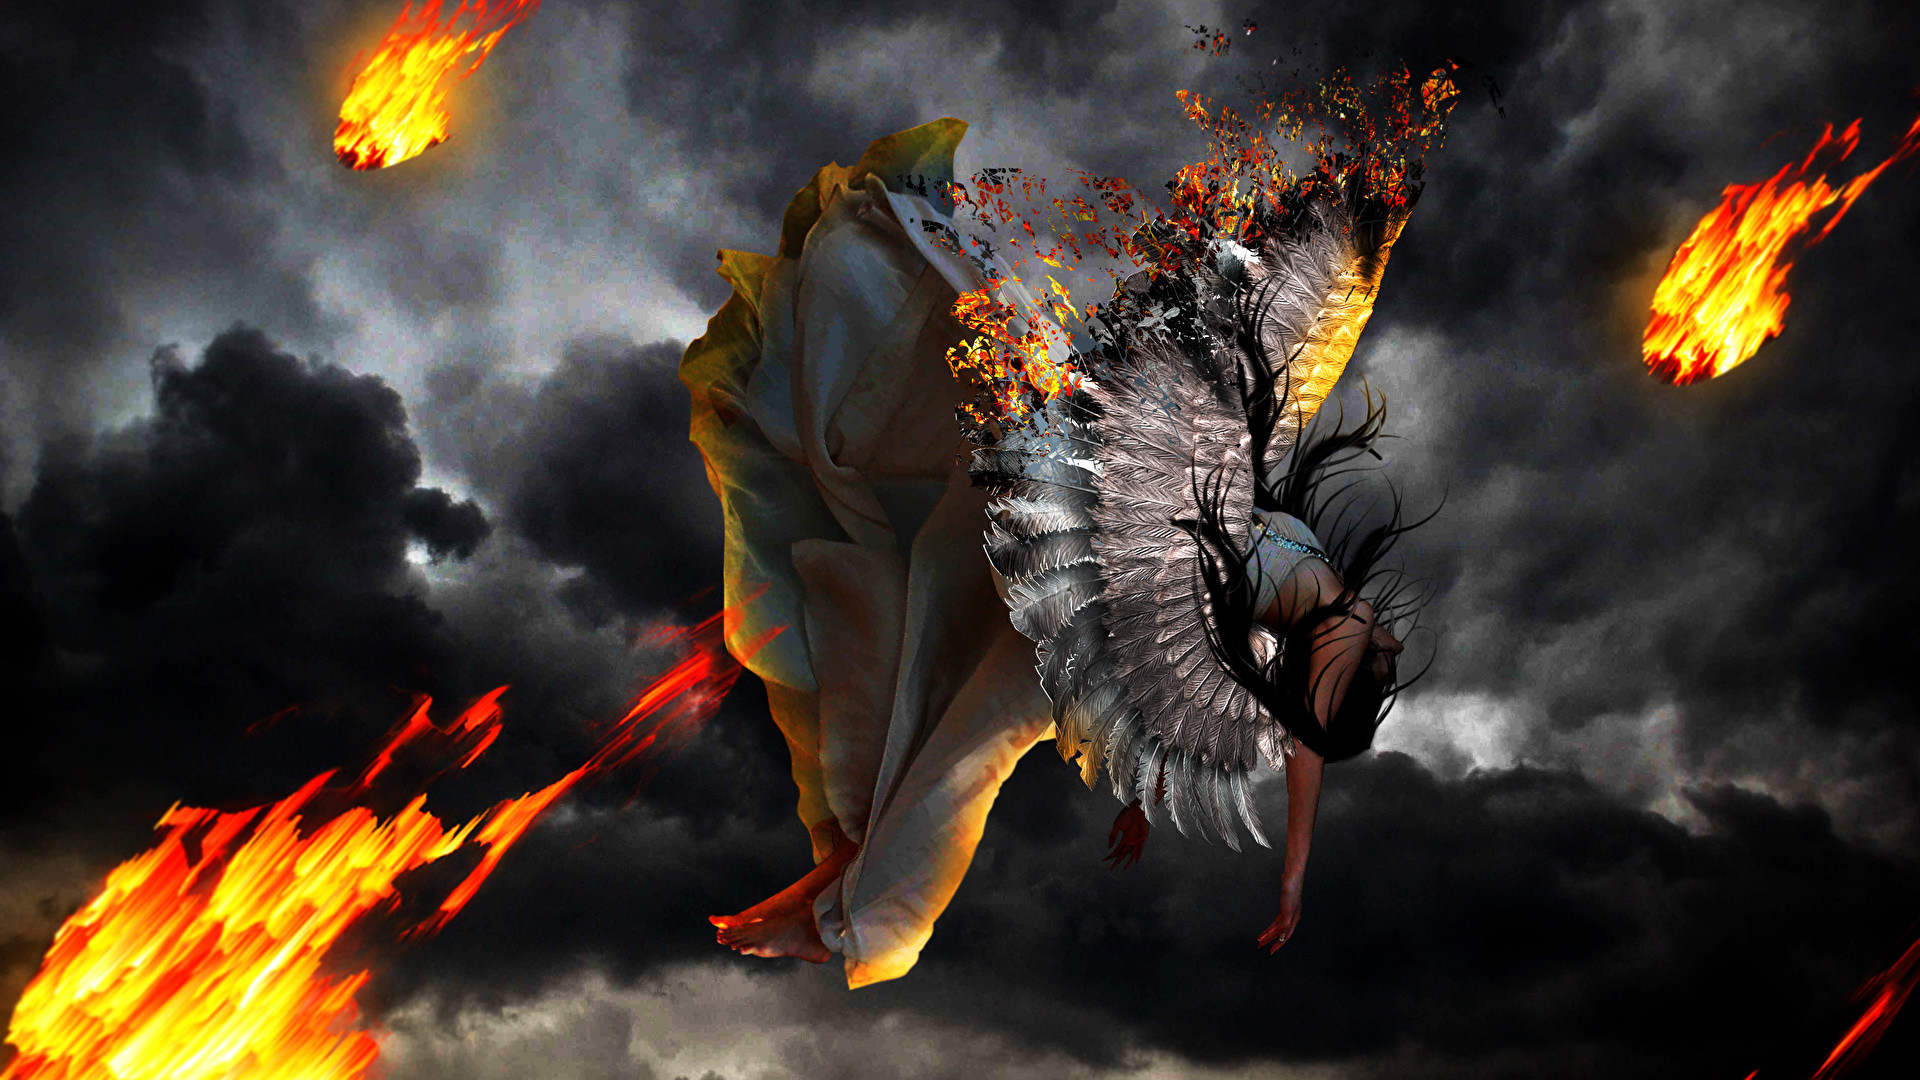 1920x1080 Wallpaper Falling Wings Girls Fantasy Flame Angels  fall down Fire